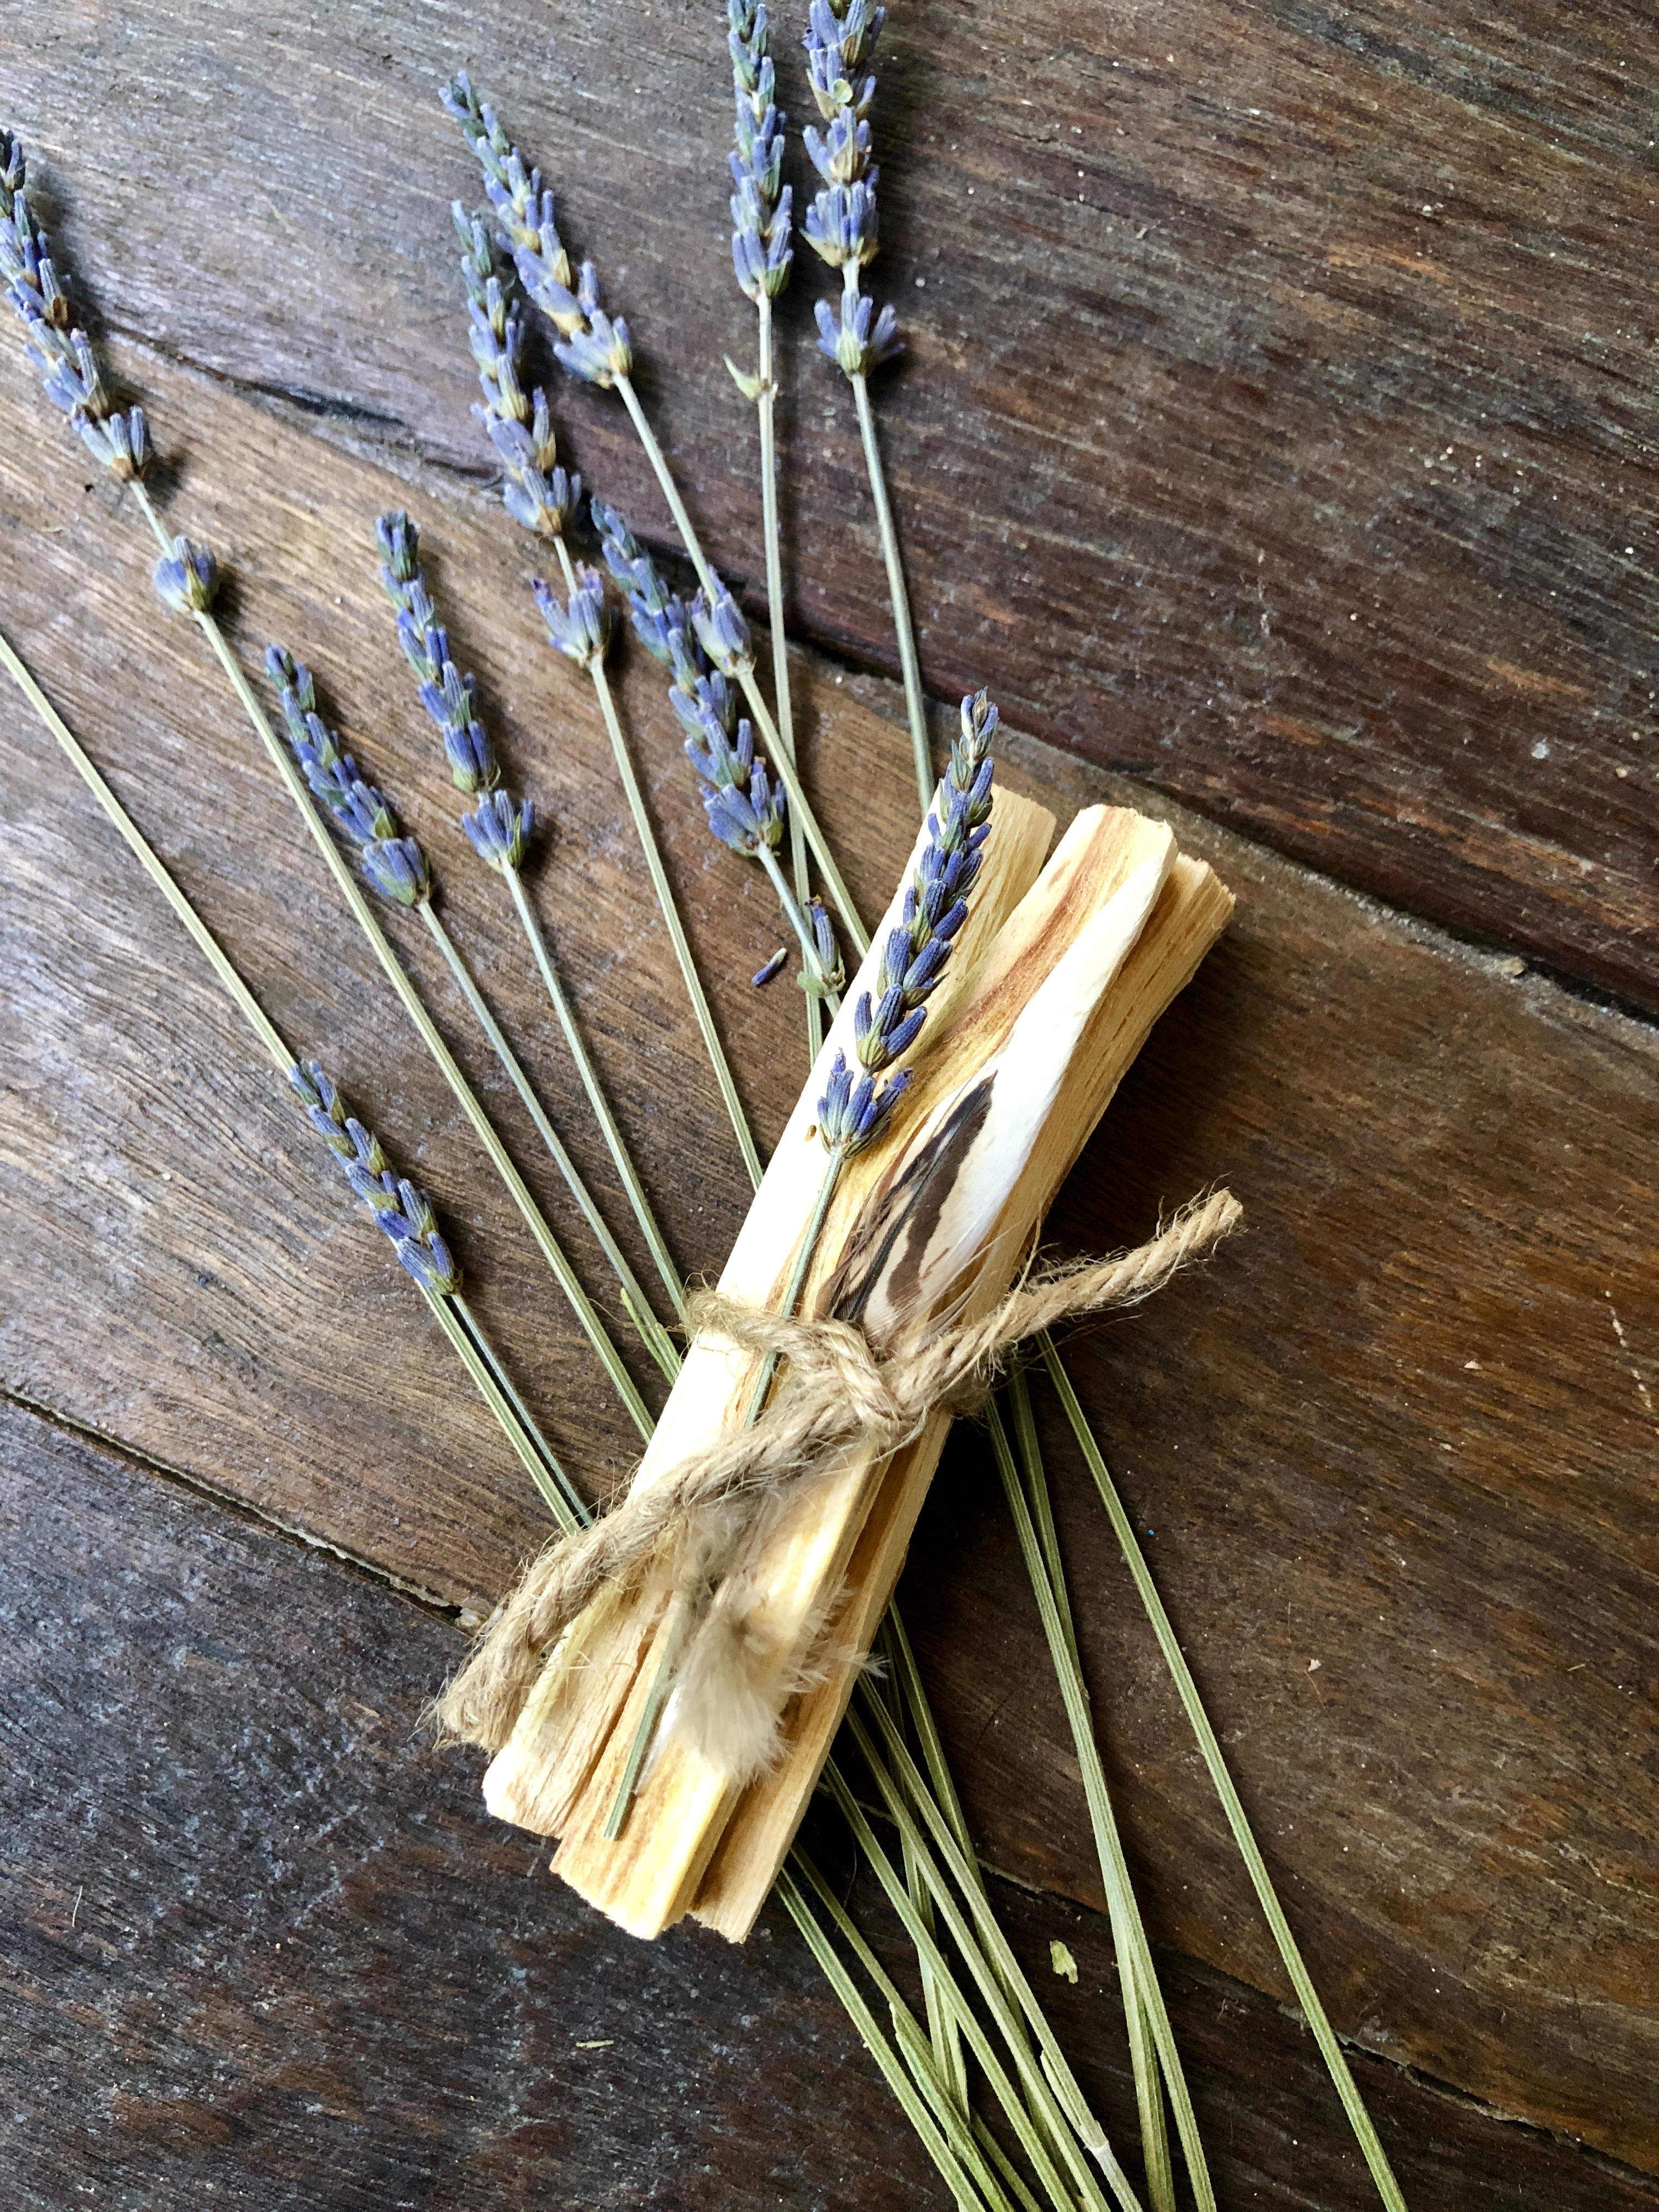 Palo Santo Sticks (Sacred Wood)